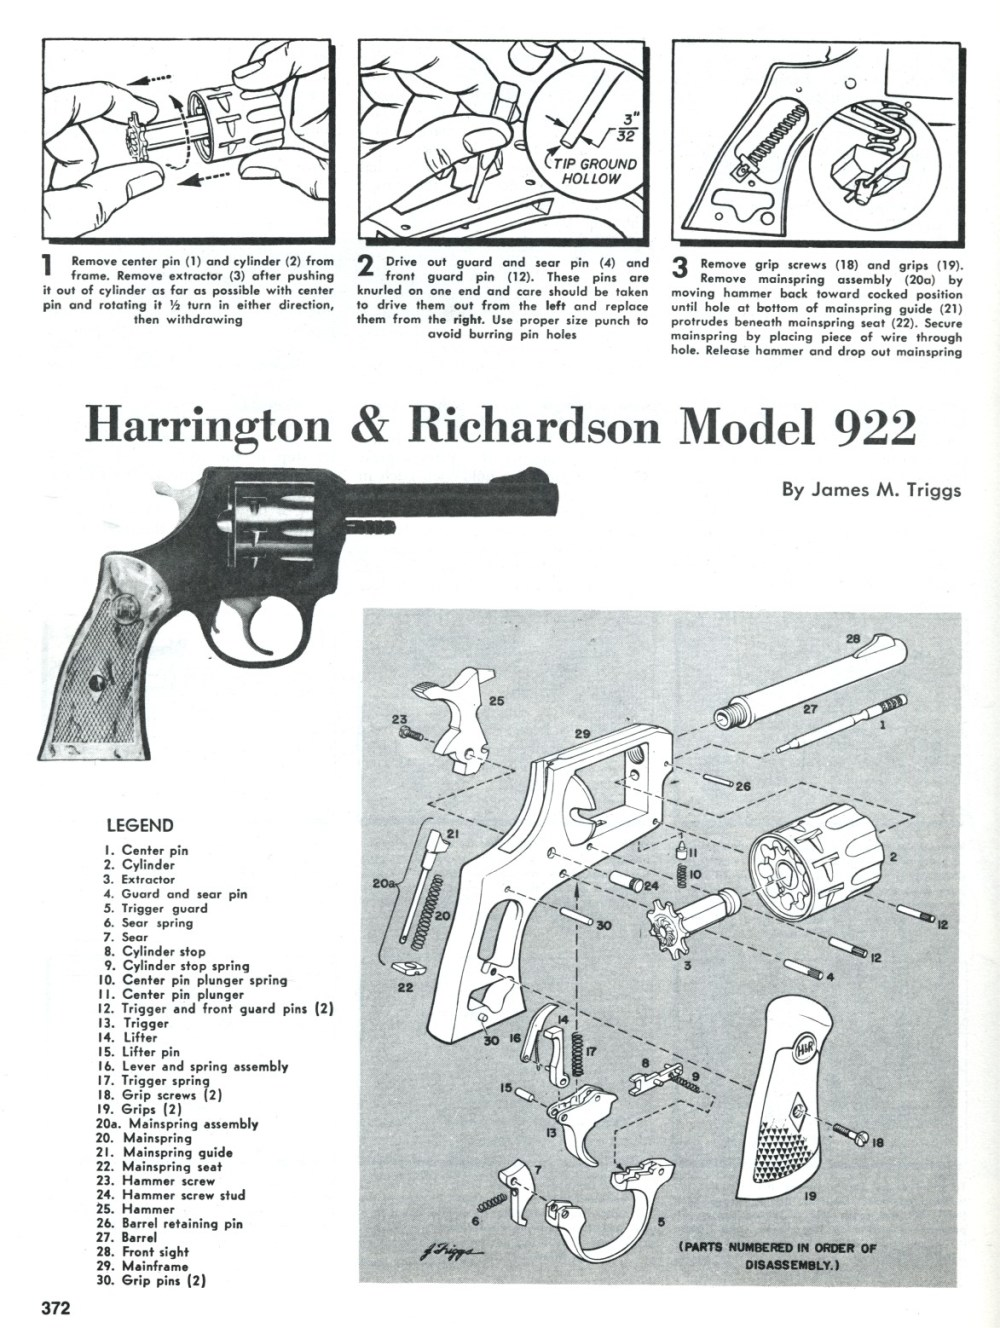 medium resolution of pin revolvers or http maxicon com guns pics h r 922 1a jpg